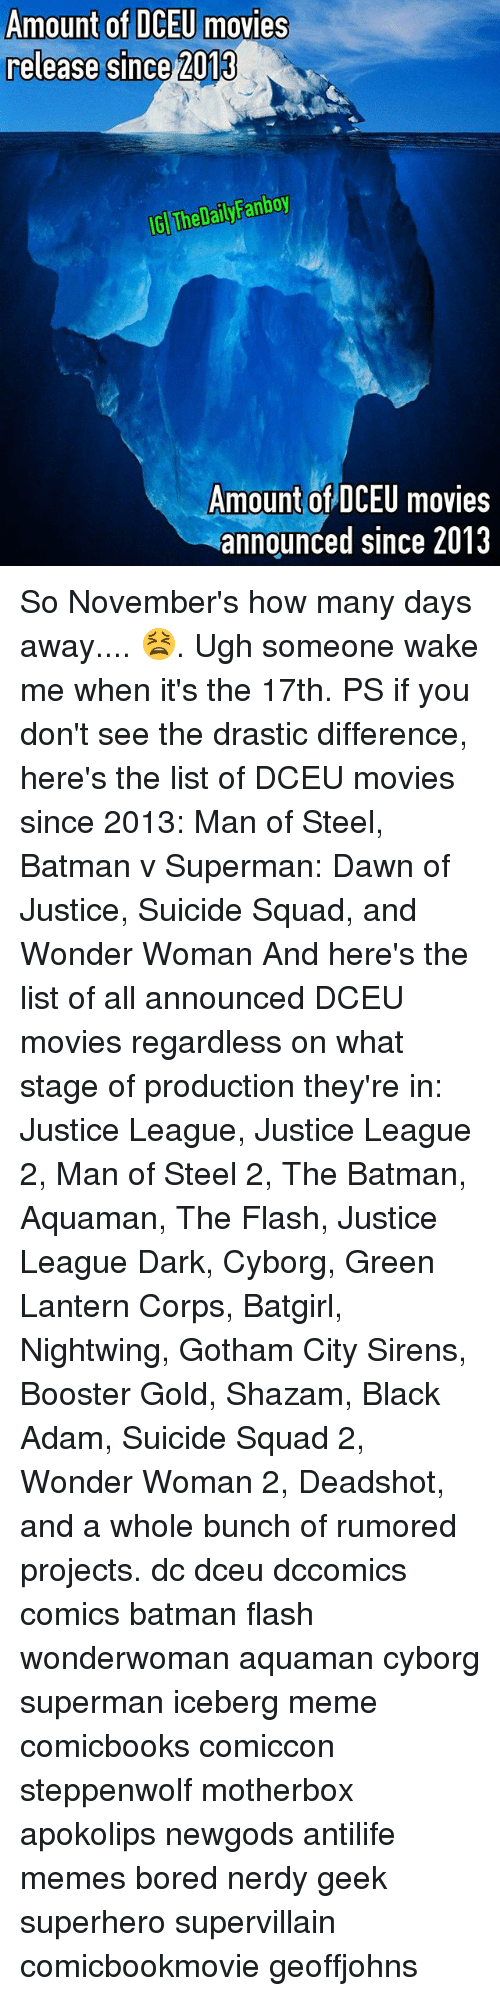 black adam: Amount of DCEU movies  release since 2013  GI The DailyFanboy  Amount of DCEU movies  announced since 2013 So November's how many days away.... 😫. Ugh someone wake me when it's the 17th. PS if you don't see the drastic difference, here's the list of DCEU movies since 2013: Man of Steel, Batman v Superman: Dawn of Justice, Suicide Squad, and Wonder Woman And here's the list of all announced DCEU movies regardless on what stage of production they're in: Justice League, Justice League 2, Man of Steel 2, The Batman, Aquaman, The Flash, Justice League Dark, Cyborg, Green Lantern Corps, Batgirl, Nightwing, Gotham City Sirens, Booster Gold, Shazam, Black Adam, Suicide Squad 2, Wonder Woman 2, Deadshot, and a whole bunch of rumored projects. dc dceu dccomics comics batman flash wonderwoman aquaman cyborg superman iceberg meme comicbooks comiccon steppenwolf motherbox apokolips newgods antilife memes bored nerdy geek superhero supervillain comicbookmovie geoffjohns